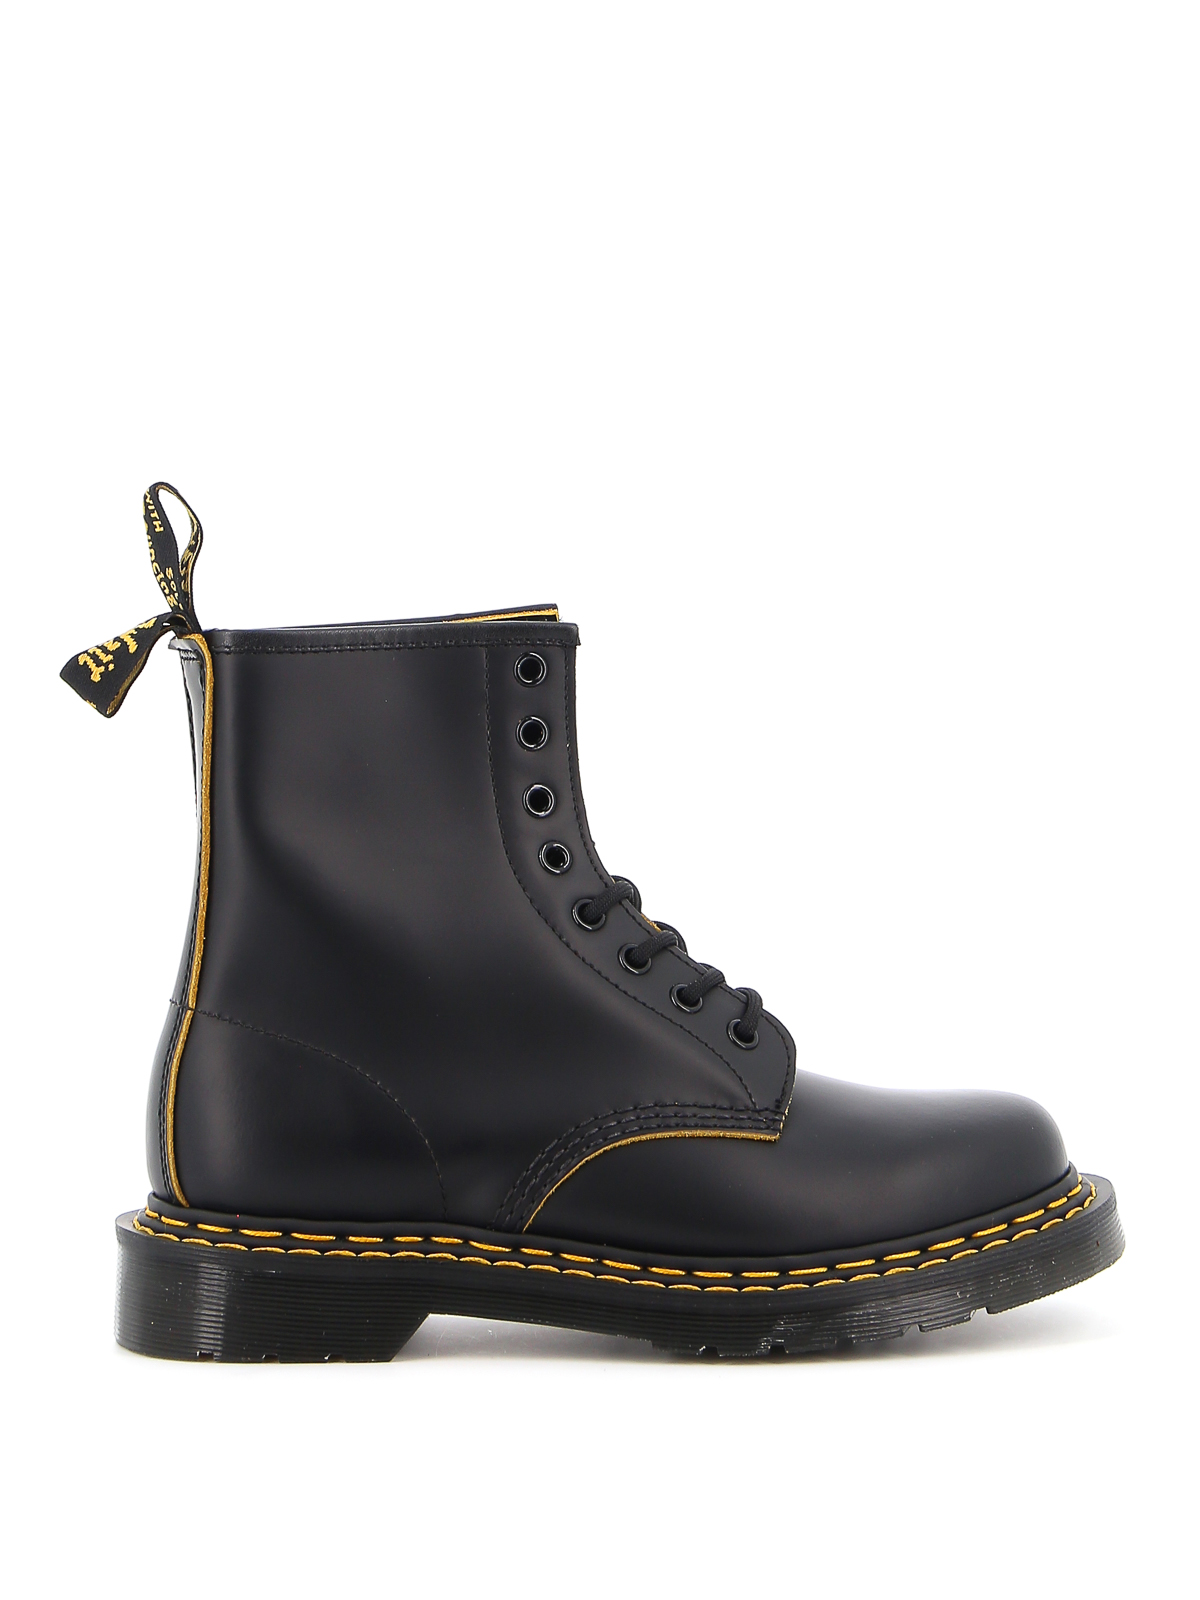 Dr. Martens Leathers 1460DS SMOOTH SLICE ANKLE BOOTS